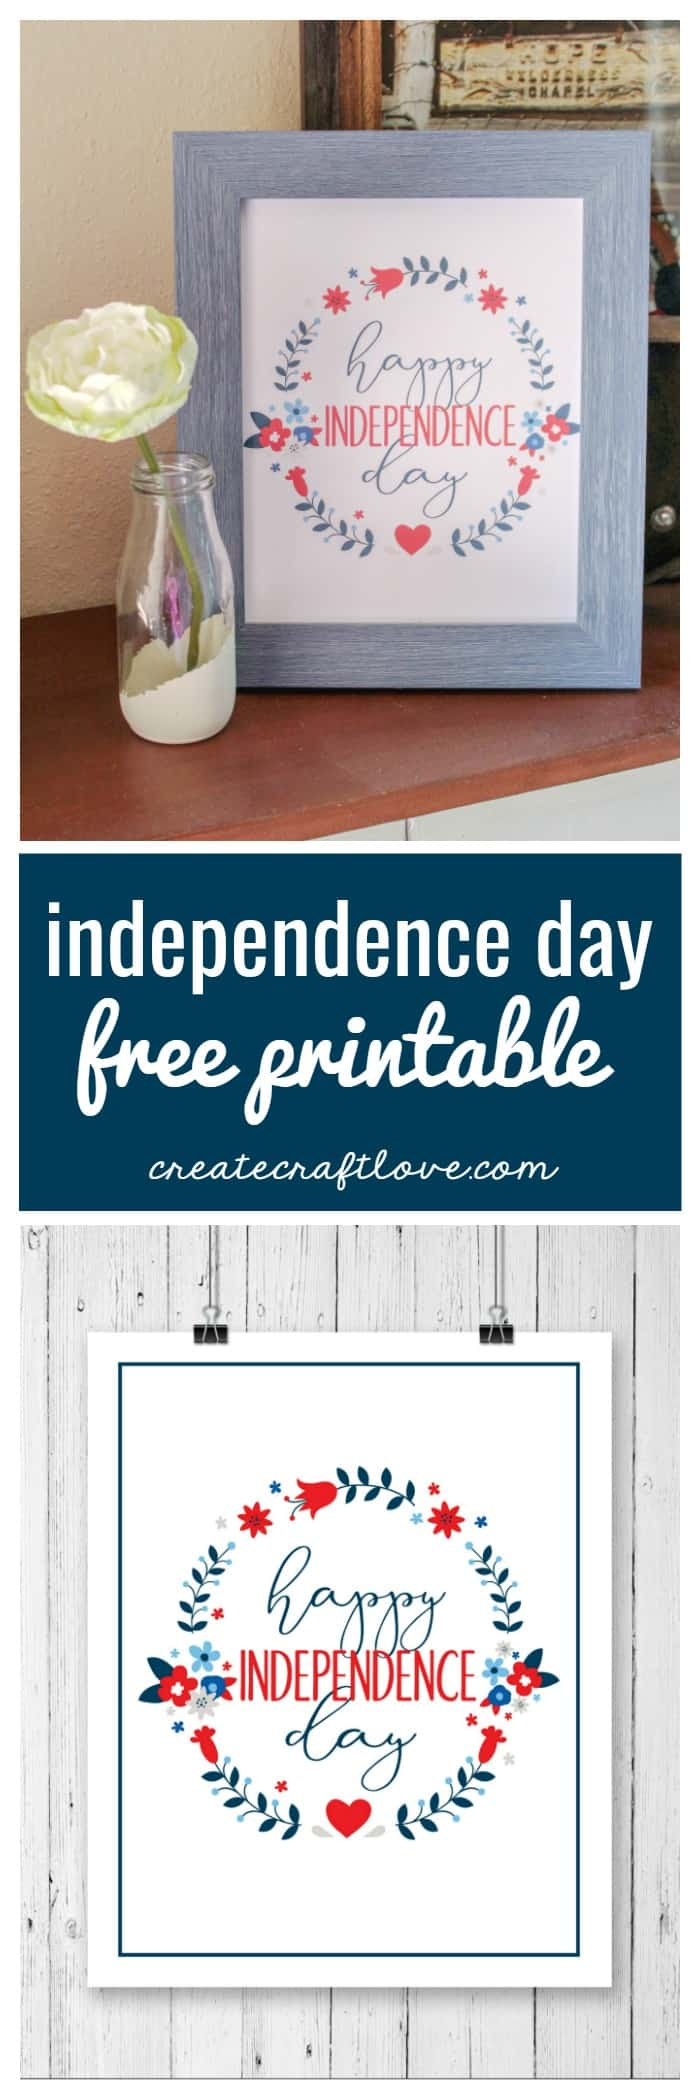 Display this Independence Day Free Printable in your favorite frame!